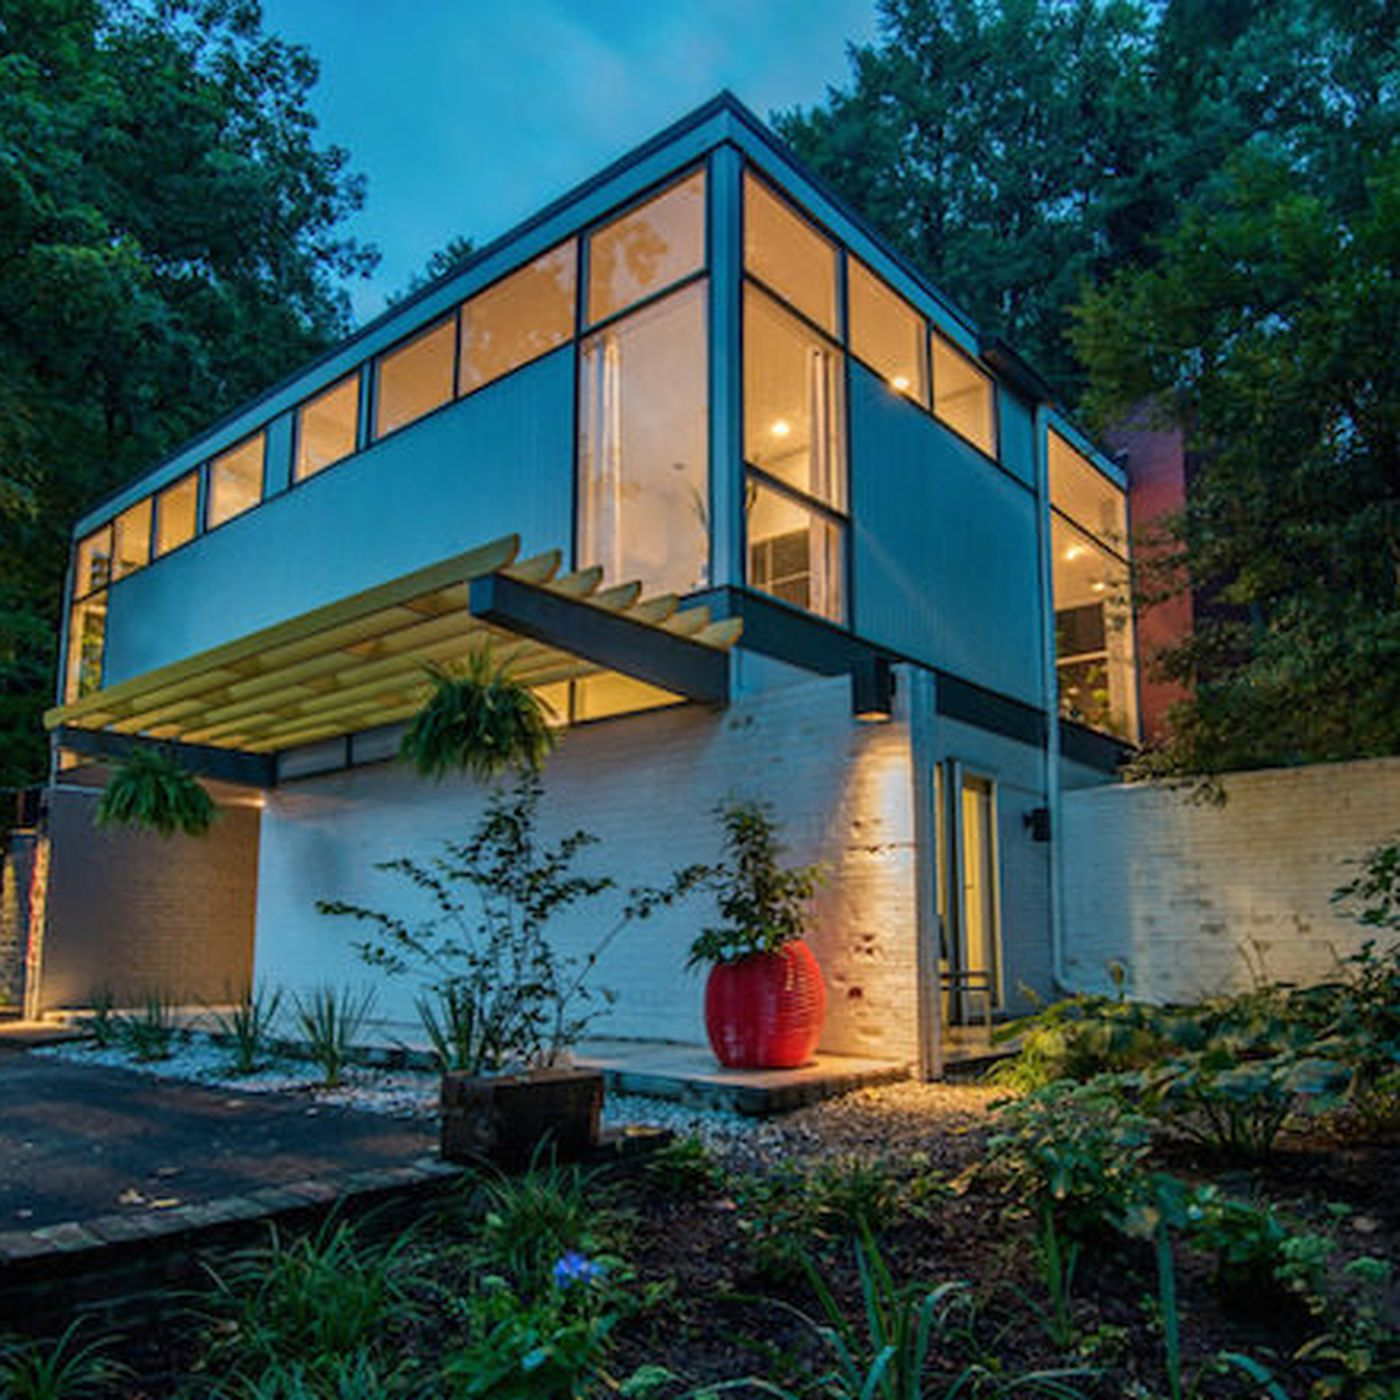 Renovated Bauhaus-Style Gem in Washington D.C. Asks $1.9M - Curbed